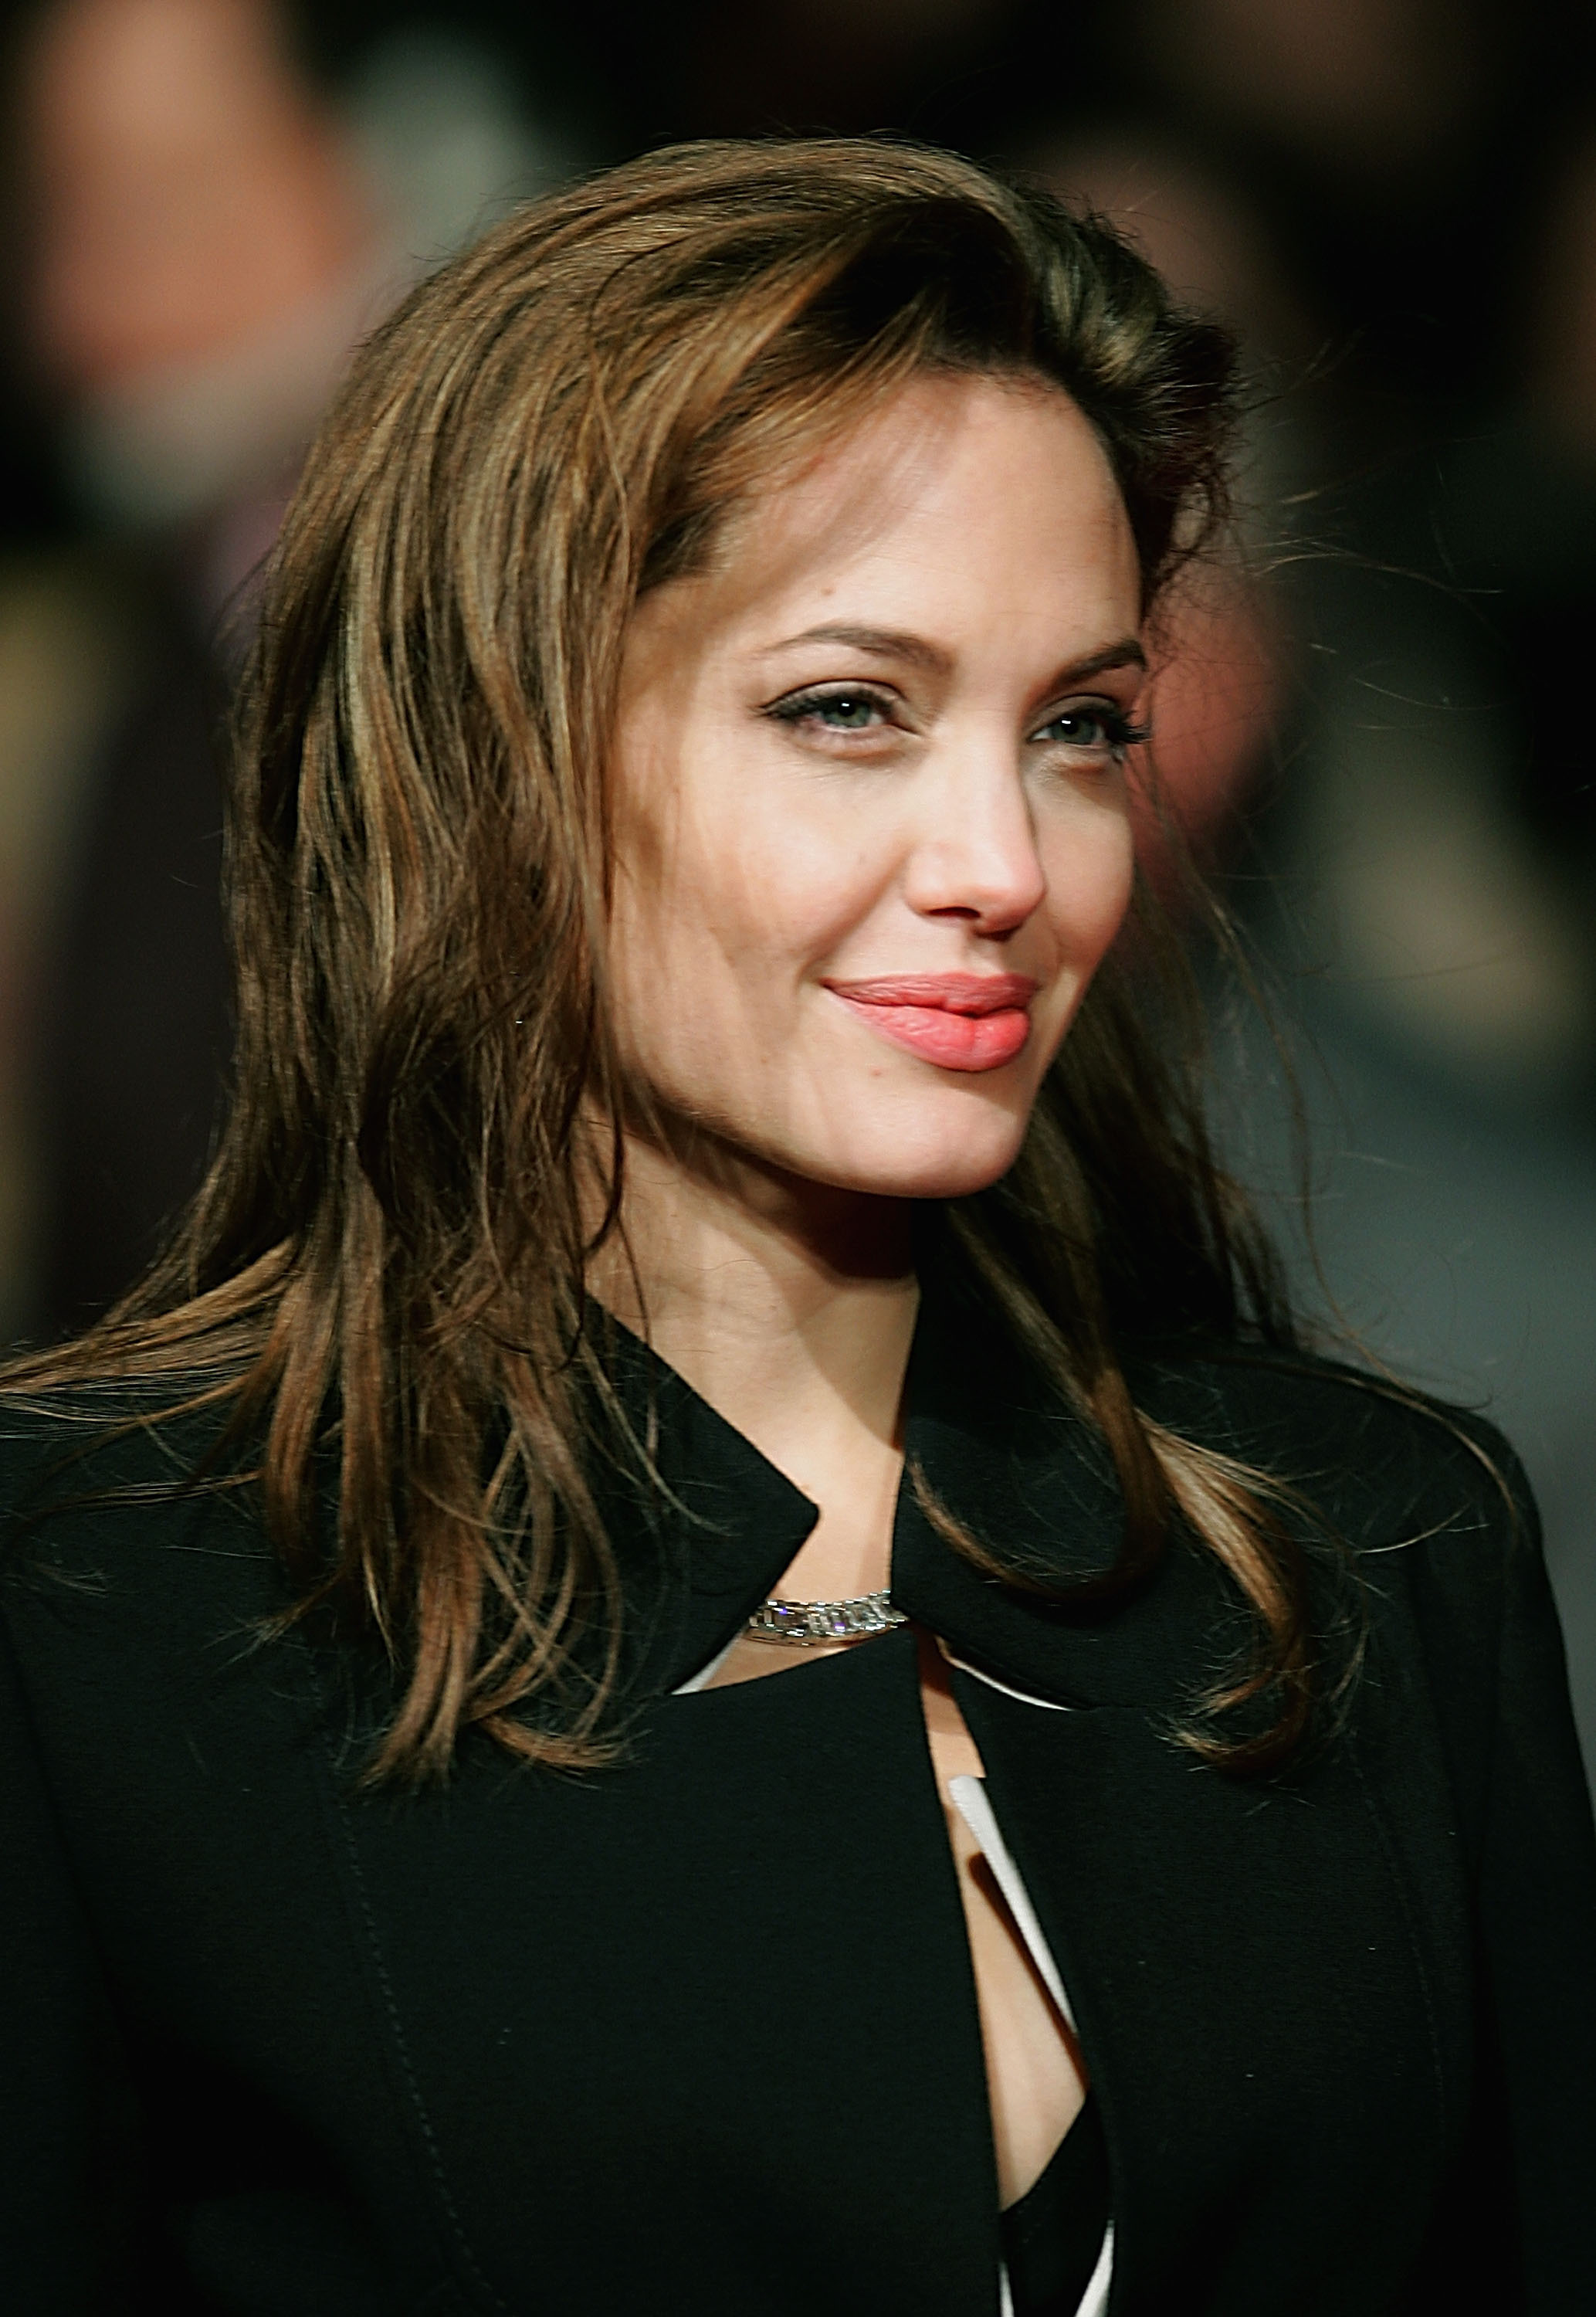 Starred by Angelina Jolie,  Film on Sudan Ancient Civilization Now in the Making